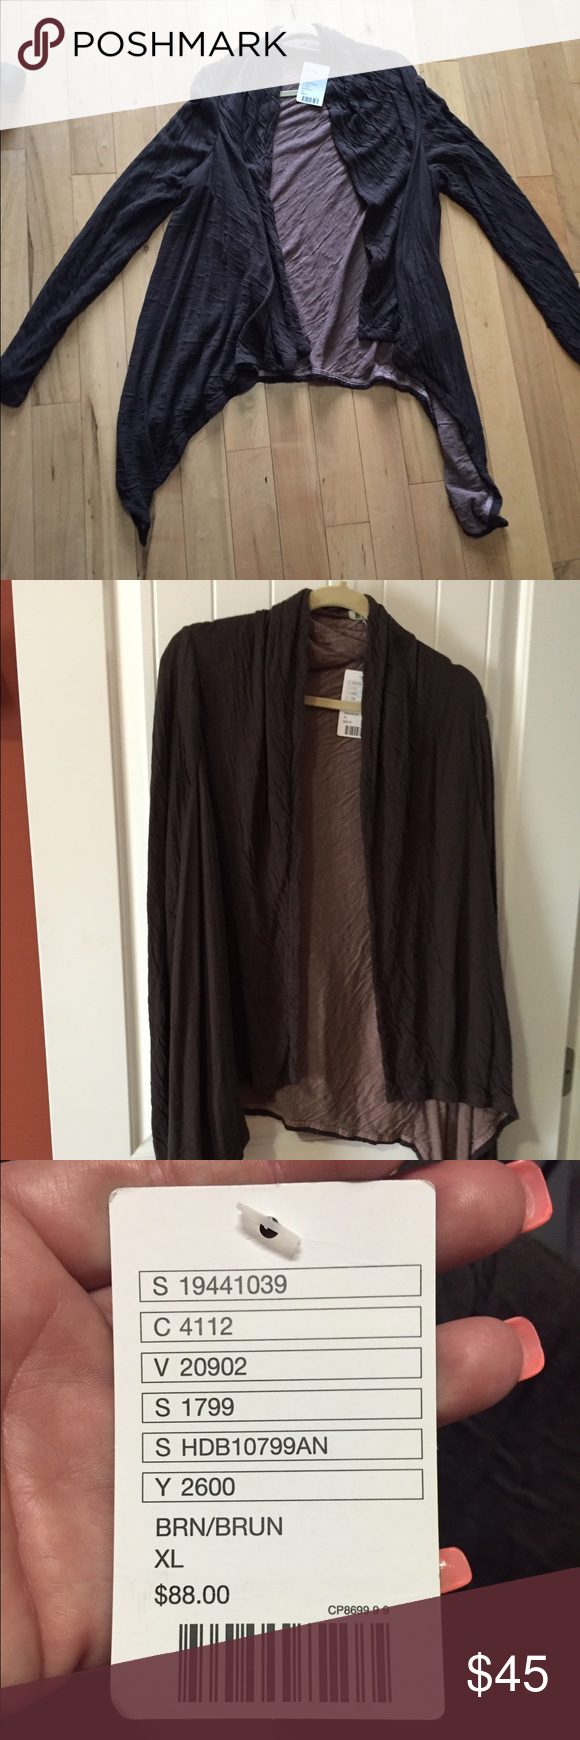 Anthropologie brown cardigan NEW WITH TAGS NWT | Anthropologie ...